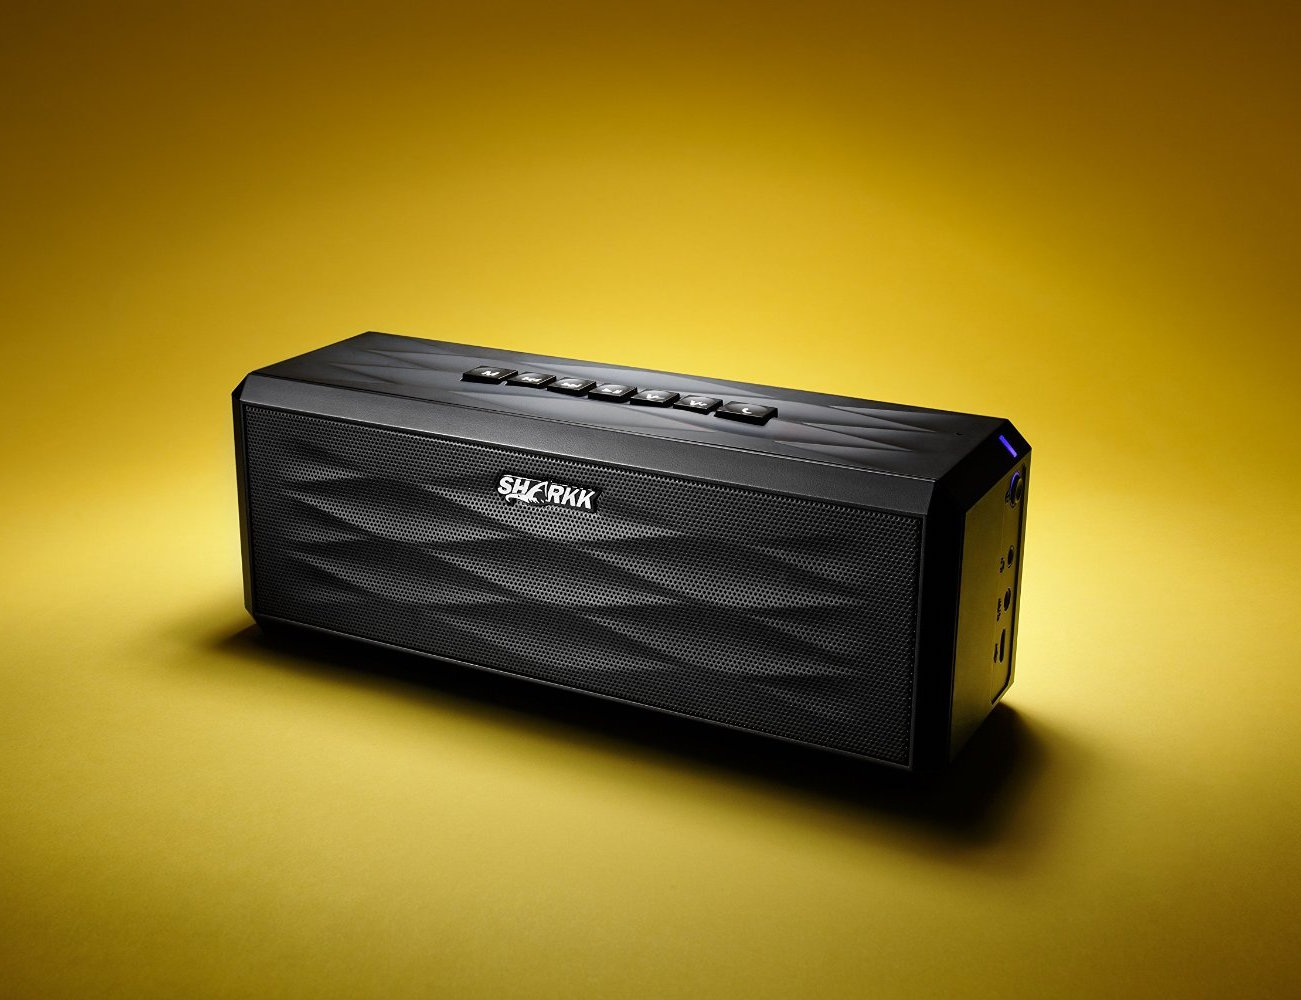 SHARKK Boombox Portable Bluetooth Speaker